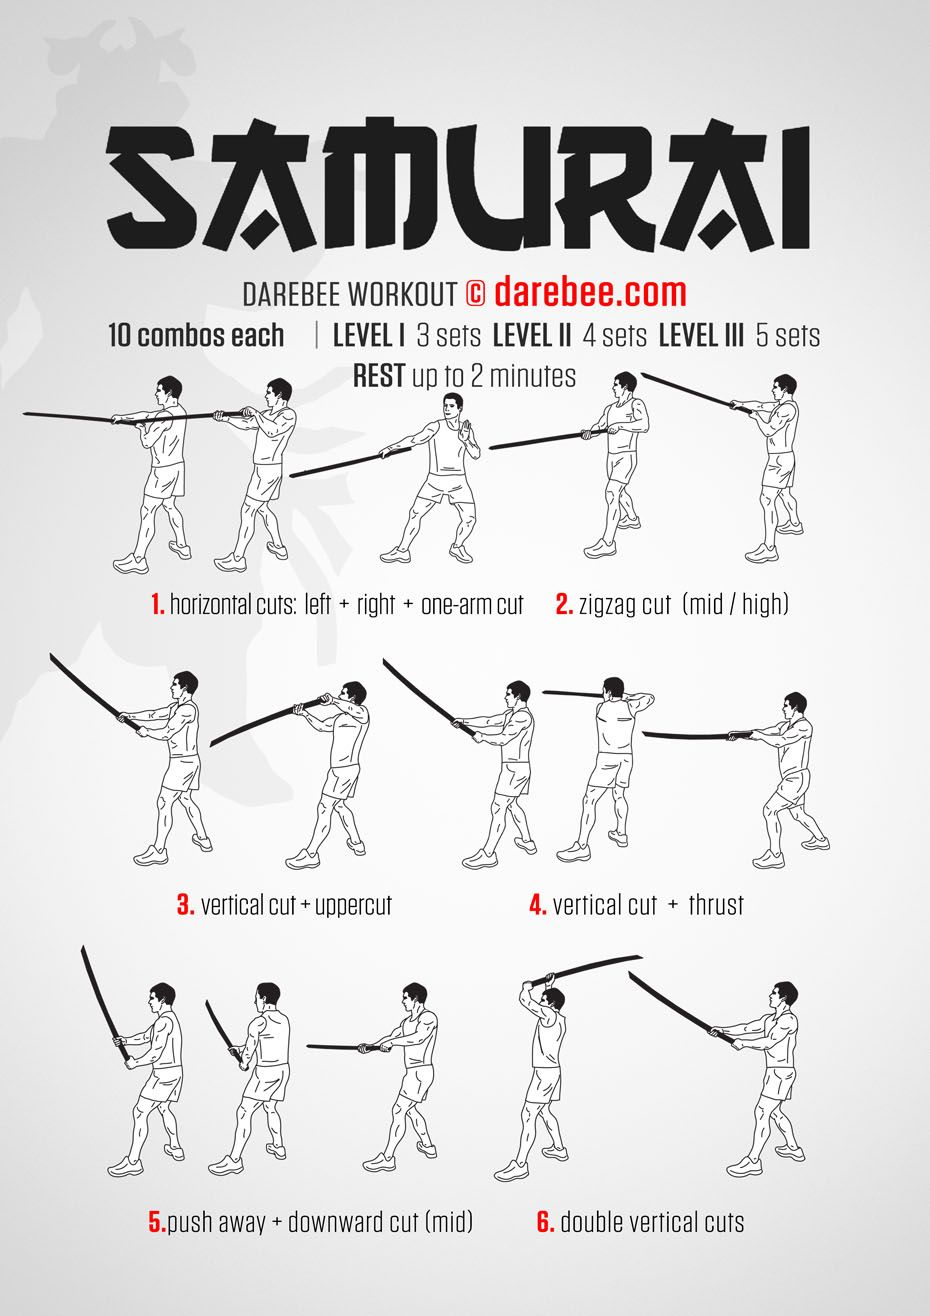 There is just never a single move that will take down a Samurai. Won't even come close, which is why in the Samurai workout, part of Darebee's Katana Week, you get to practice two-three…